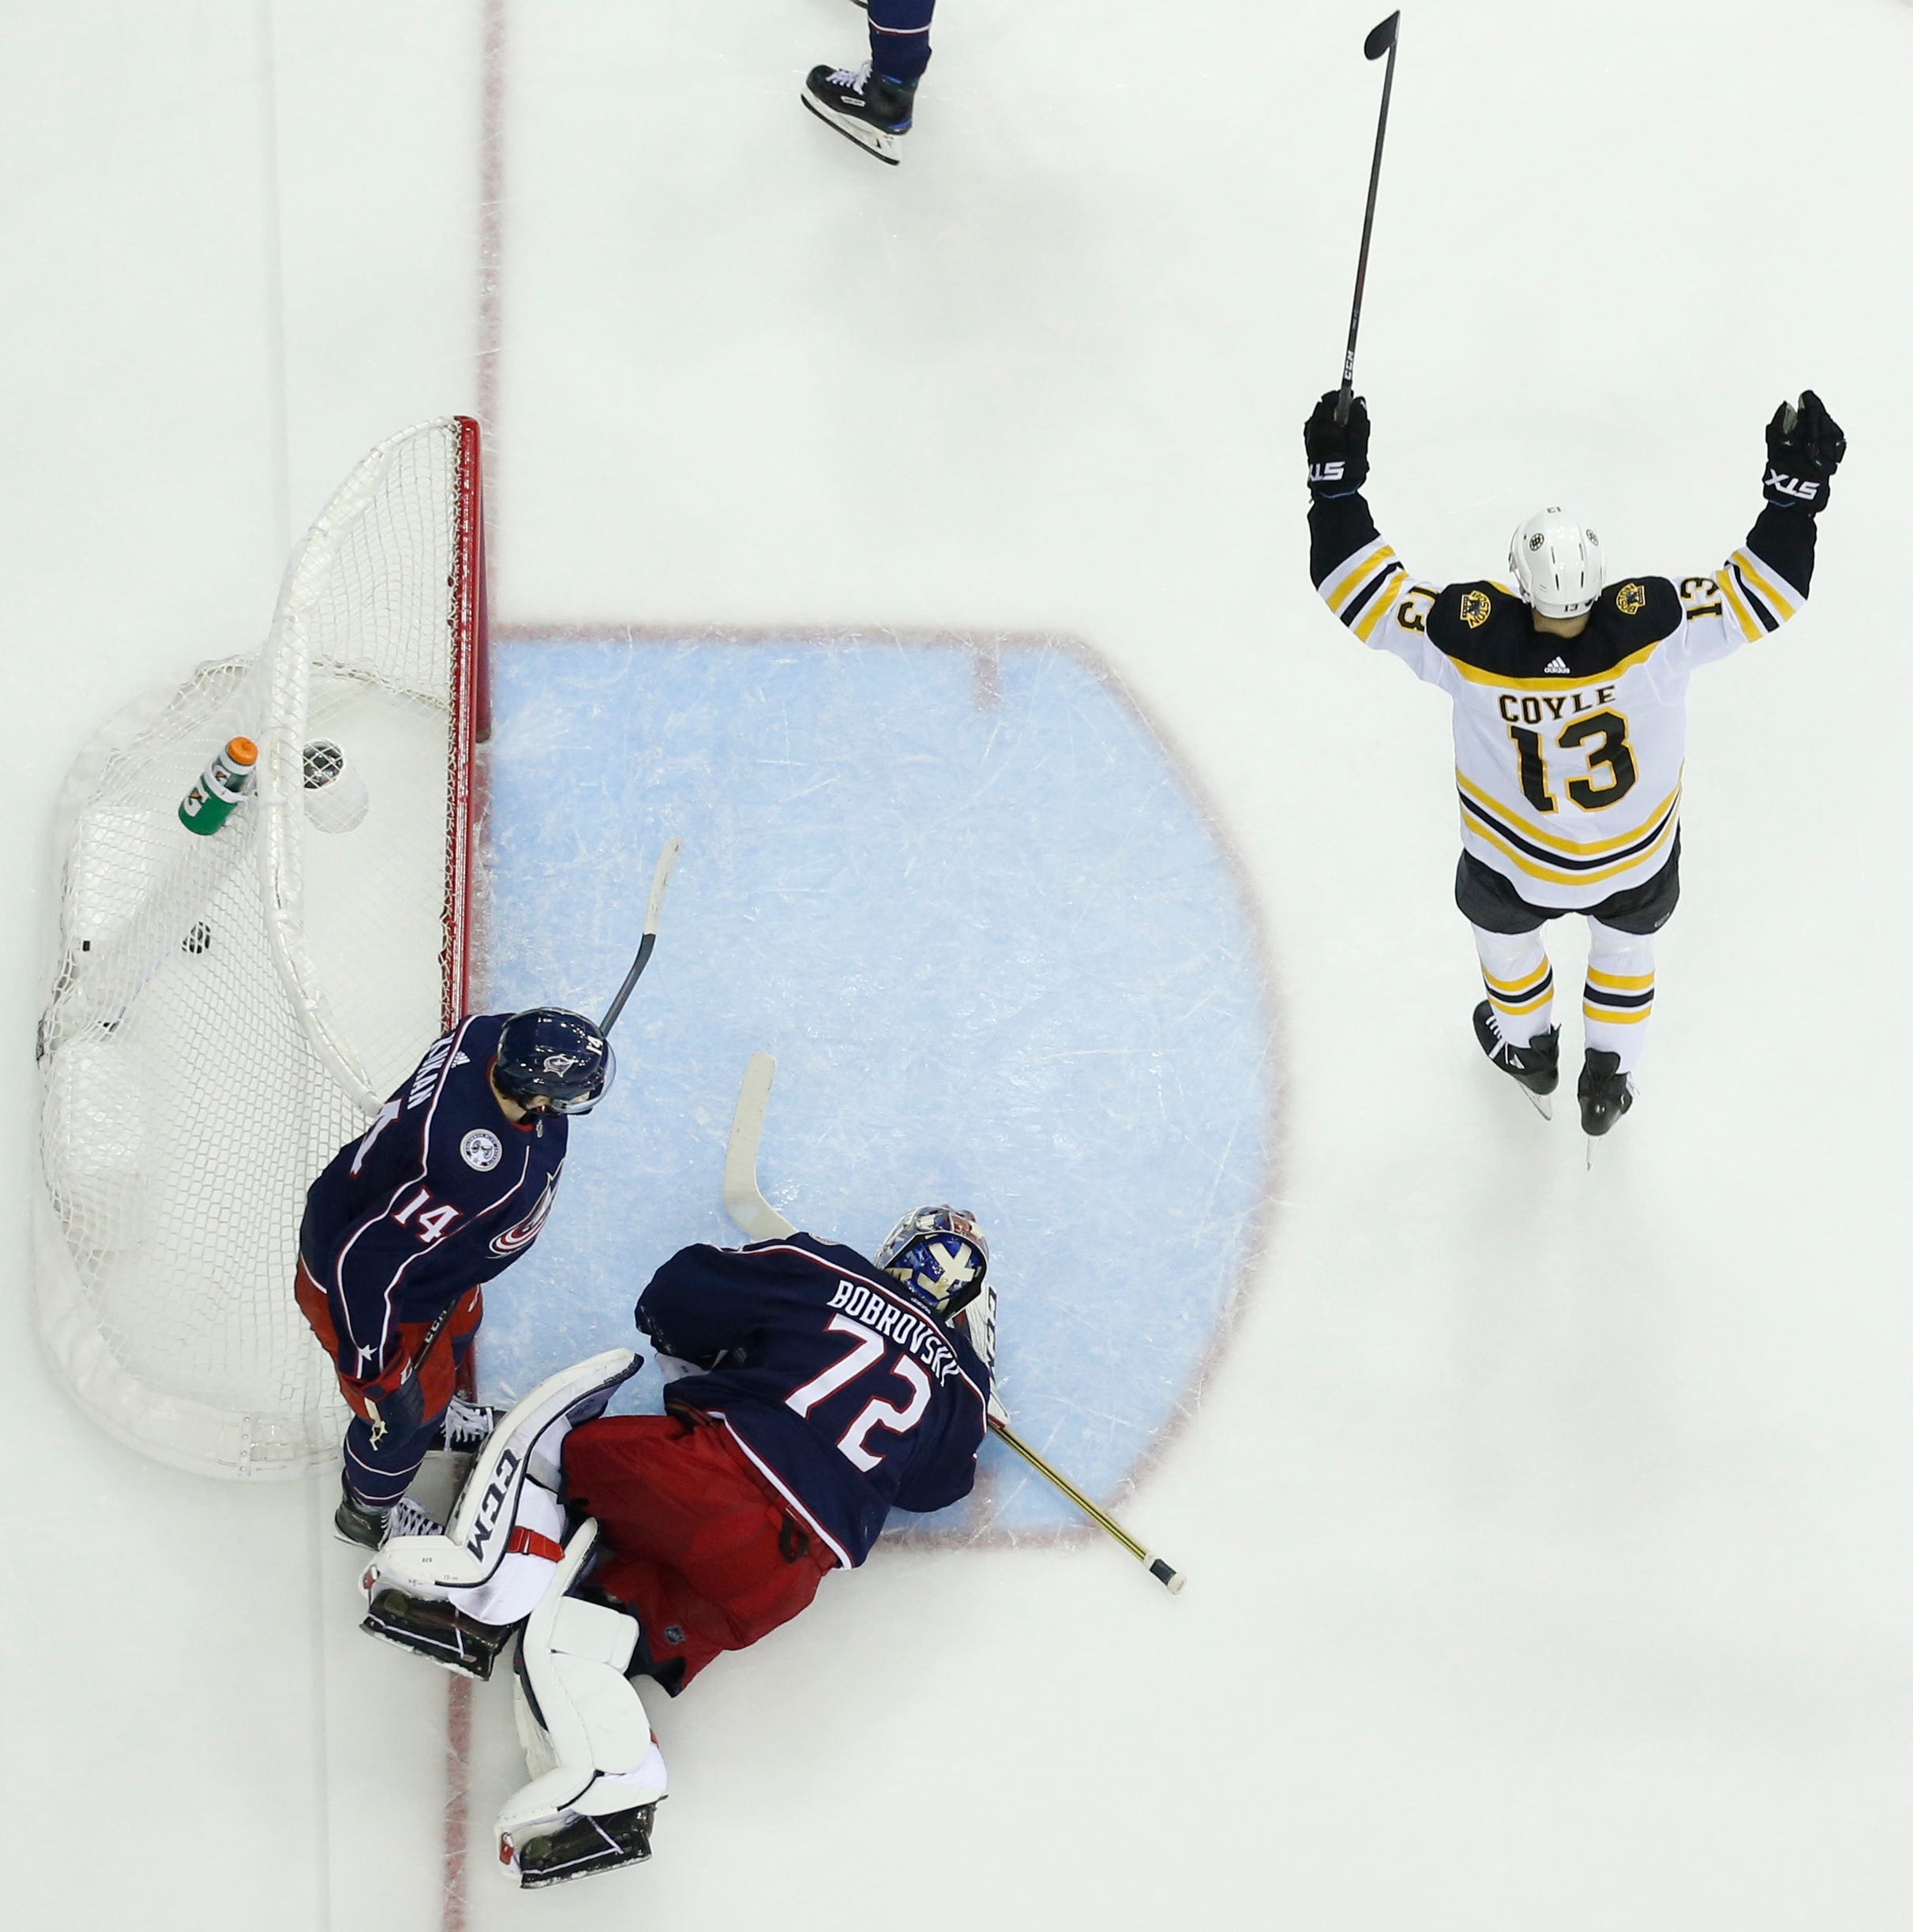 Rask comes up big as Boston Bruins advance to face 'Canes